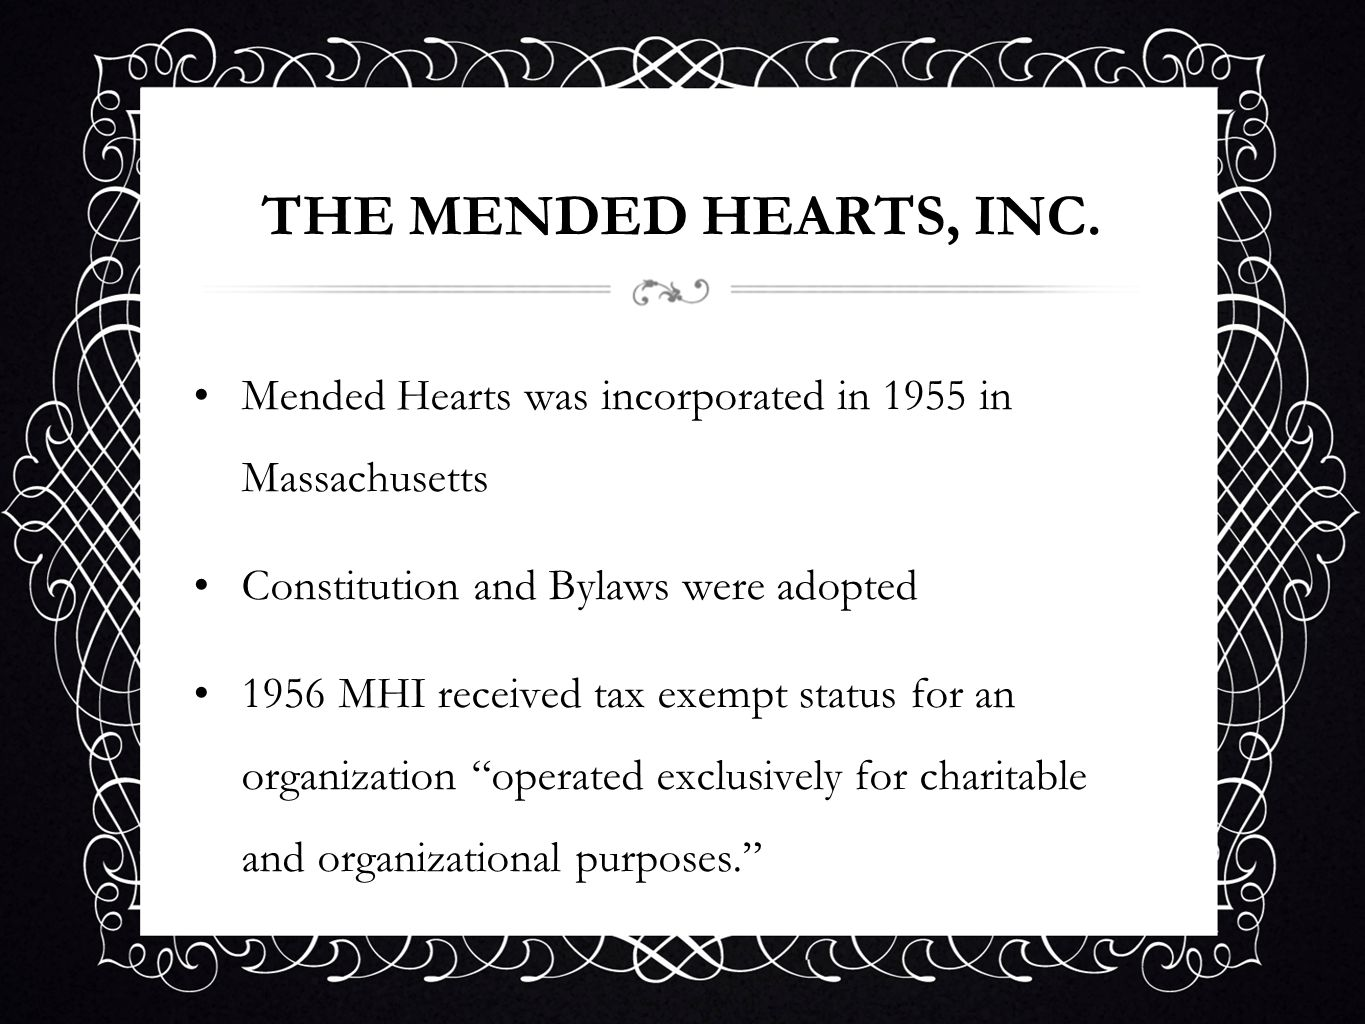 THE MENDED HEARTS, INC. Mended Hearts was incorporated in 1955 in Massachusetts Constitution and Bylaws were adopted 1956 MHI received tax exempt stat